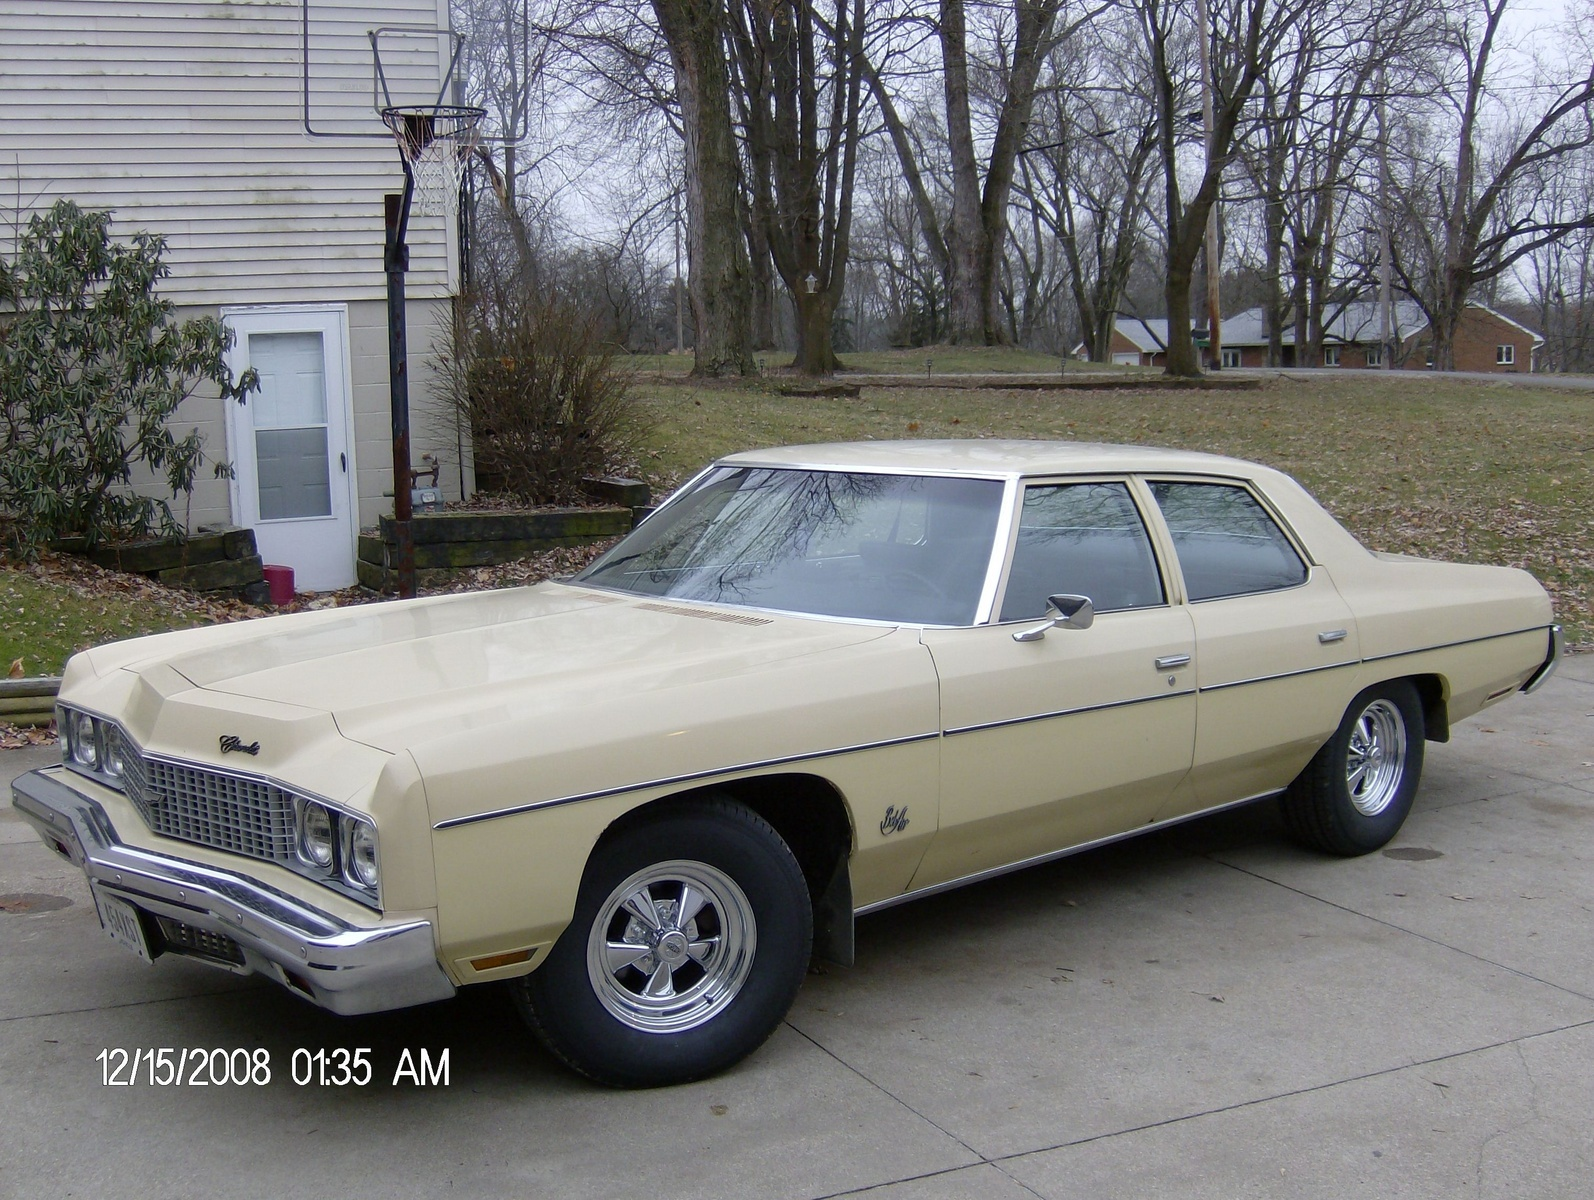 All Chevy chevy 2008 : Chevrolet Bel Air Questions - How much could i get for my 1973 ...